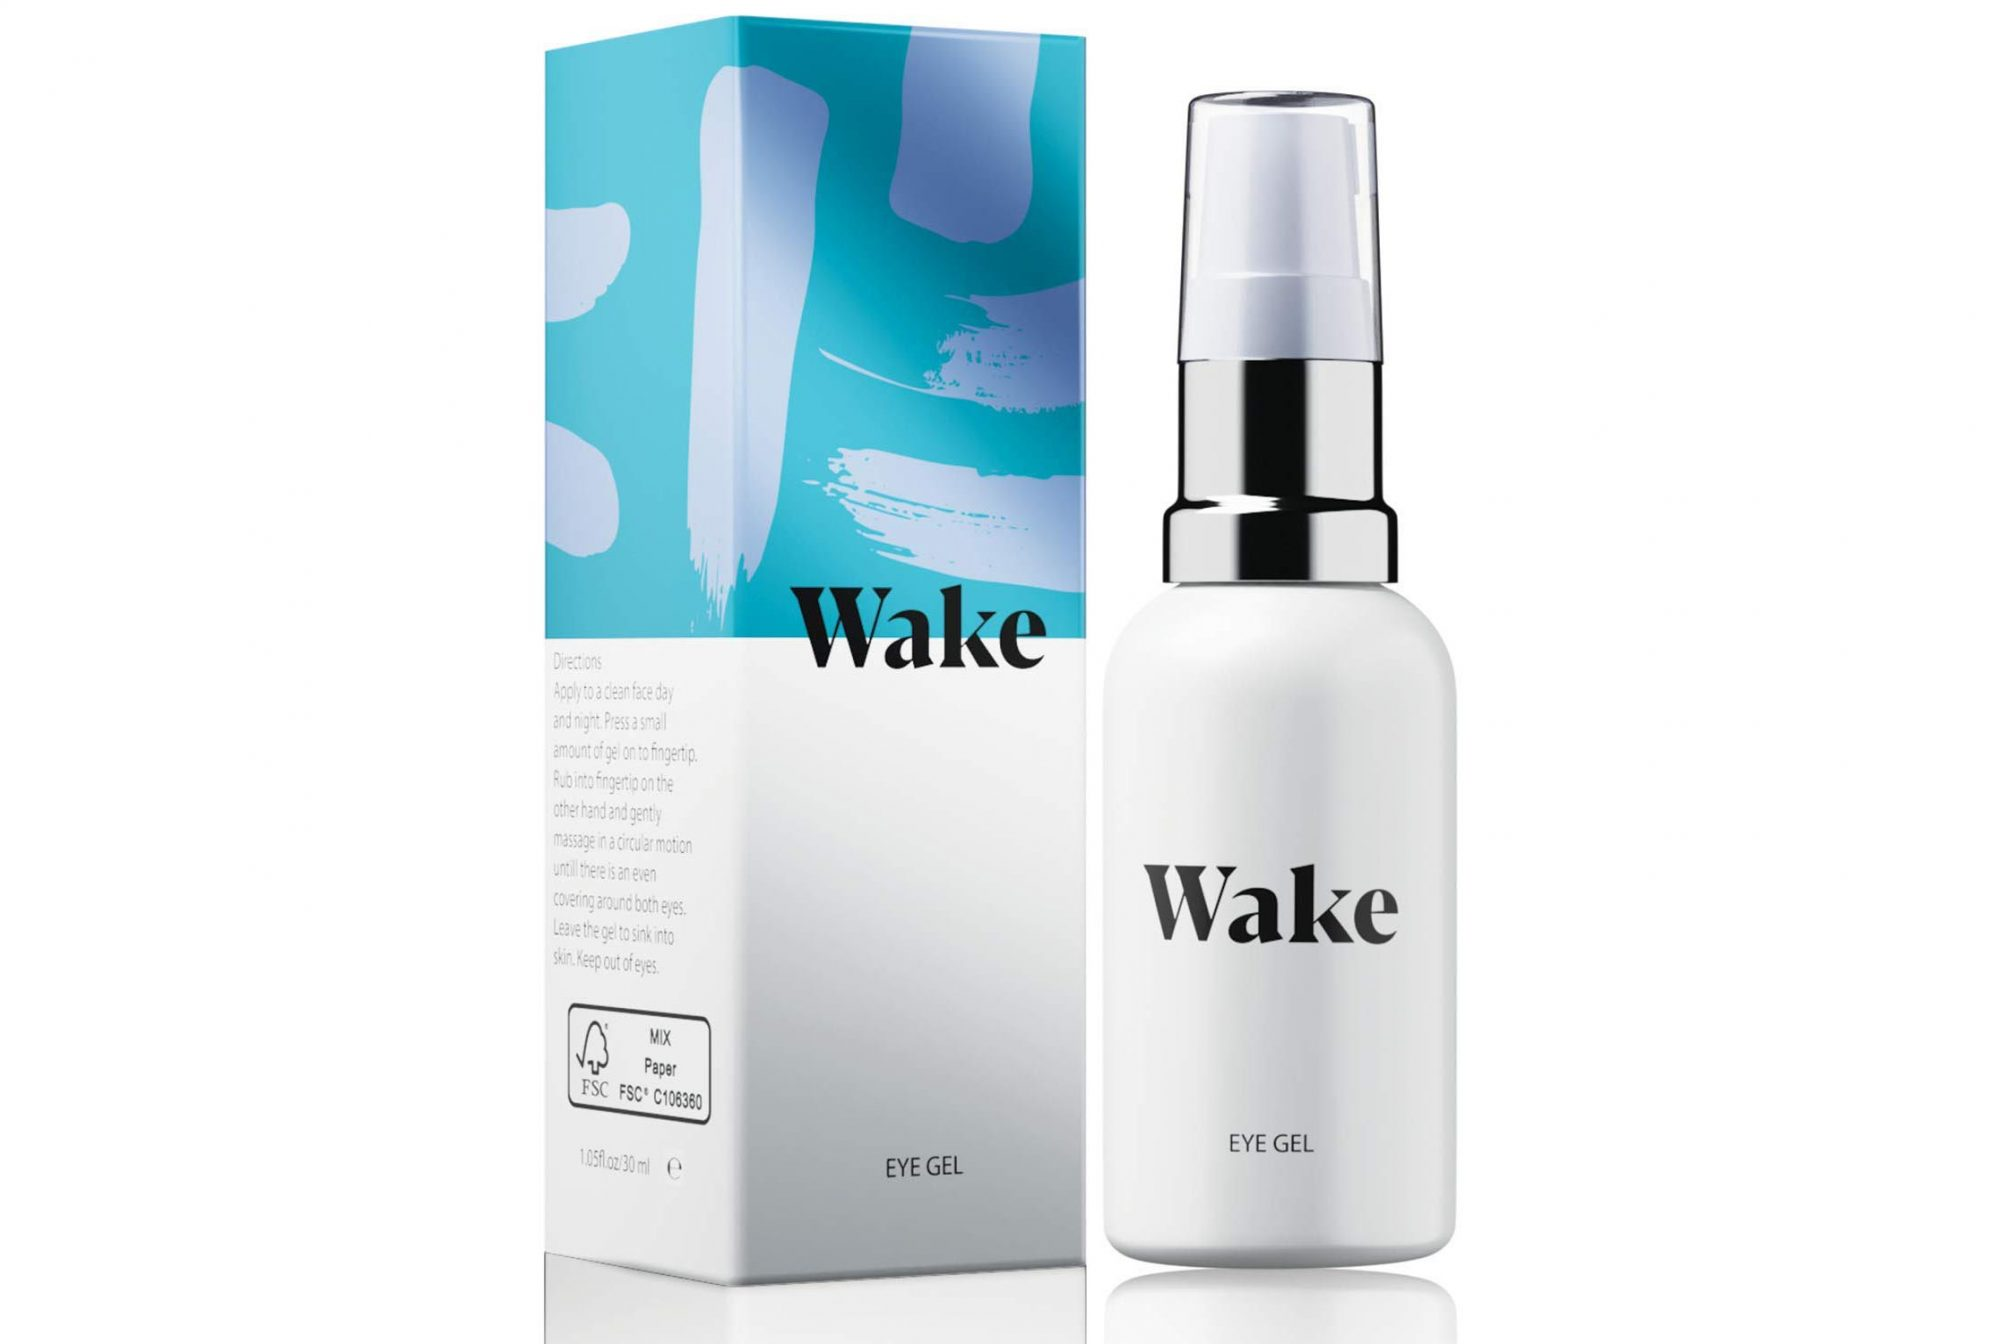 Wake Eye Gel